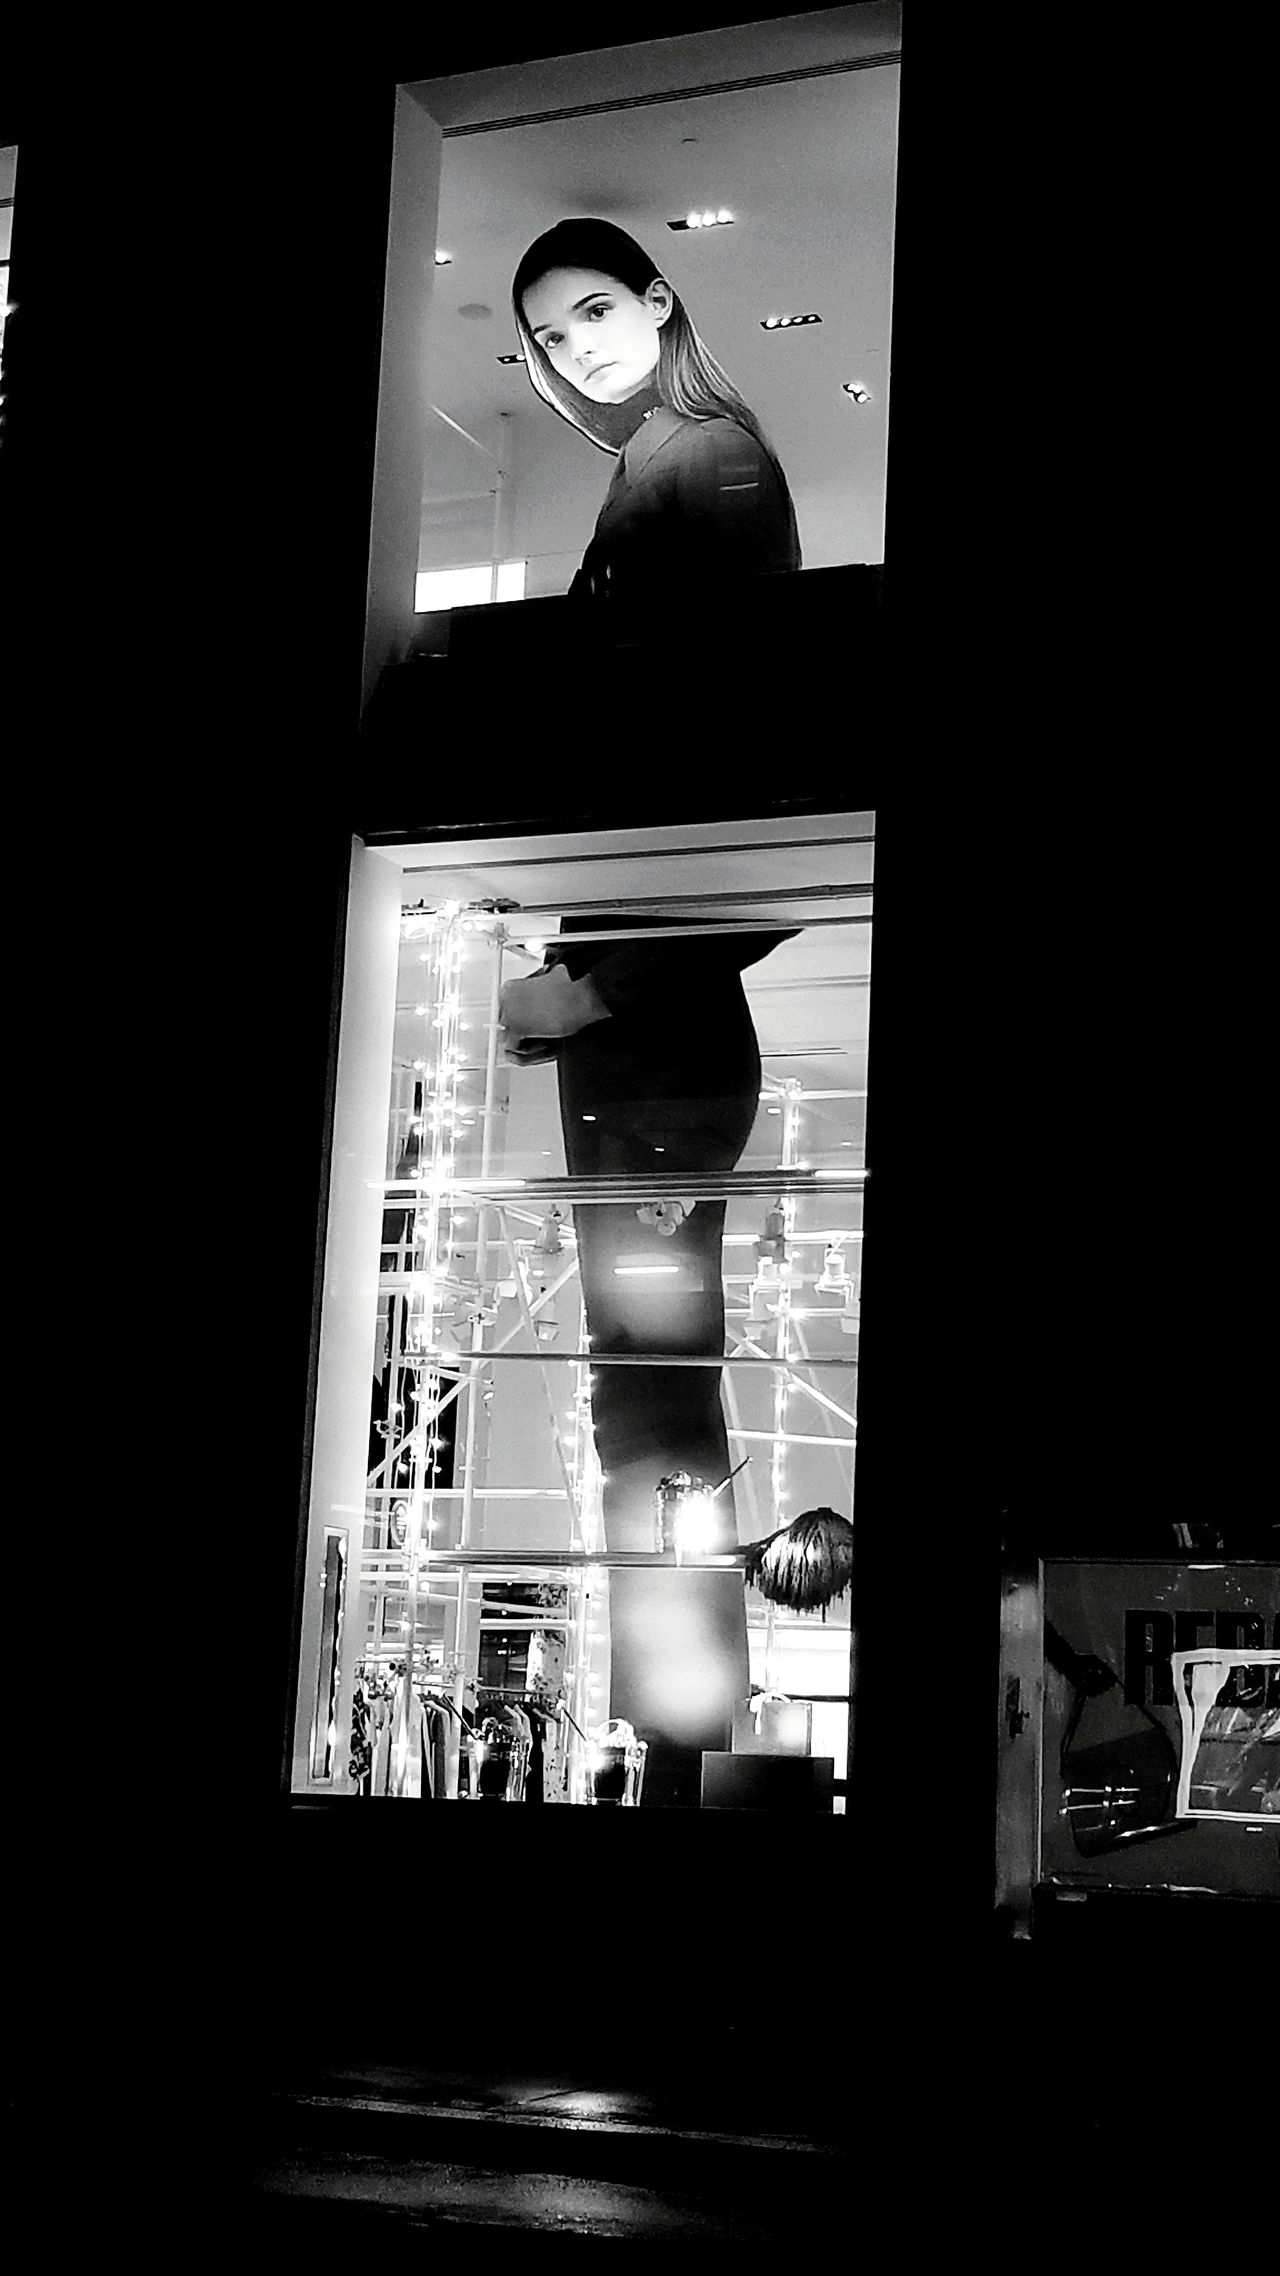 Large prinnt of model in store window